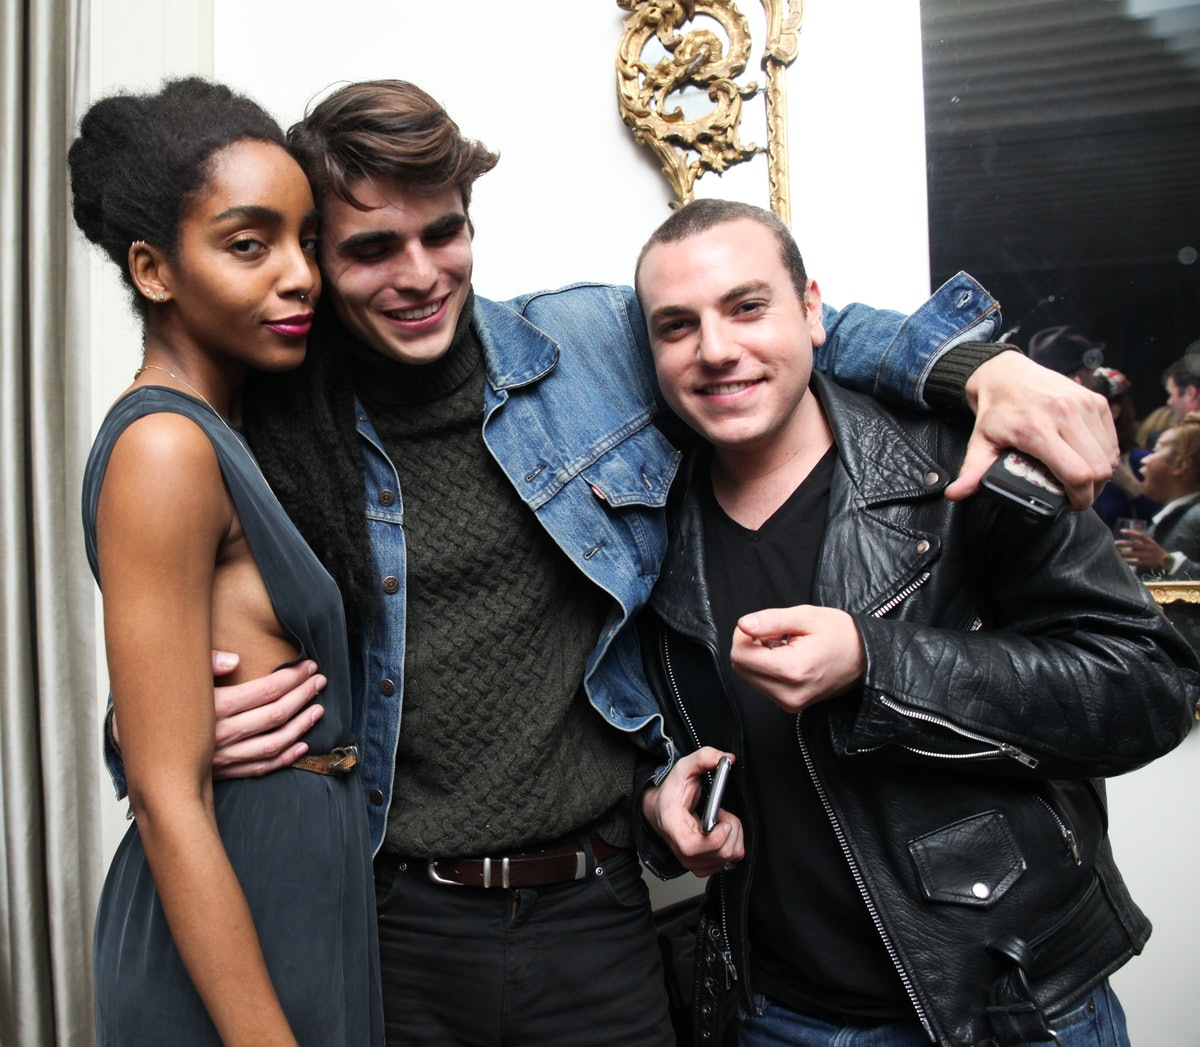 Cipriana Quann, Diego Villarreal, and Marcus Cooper